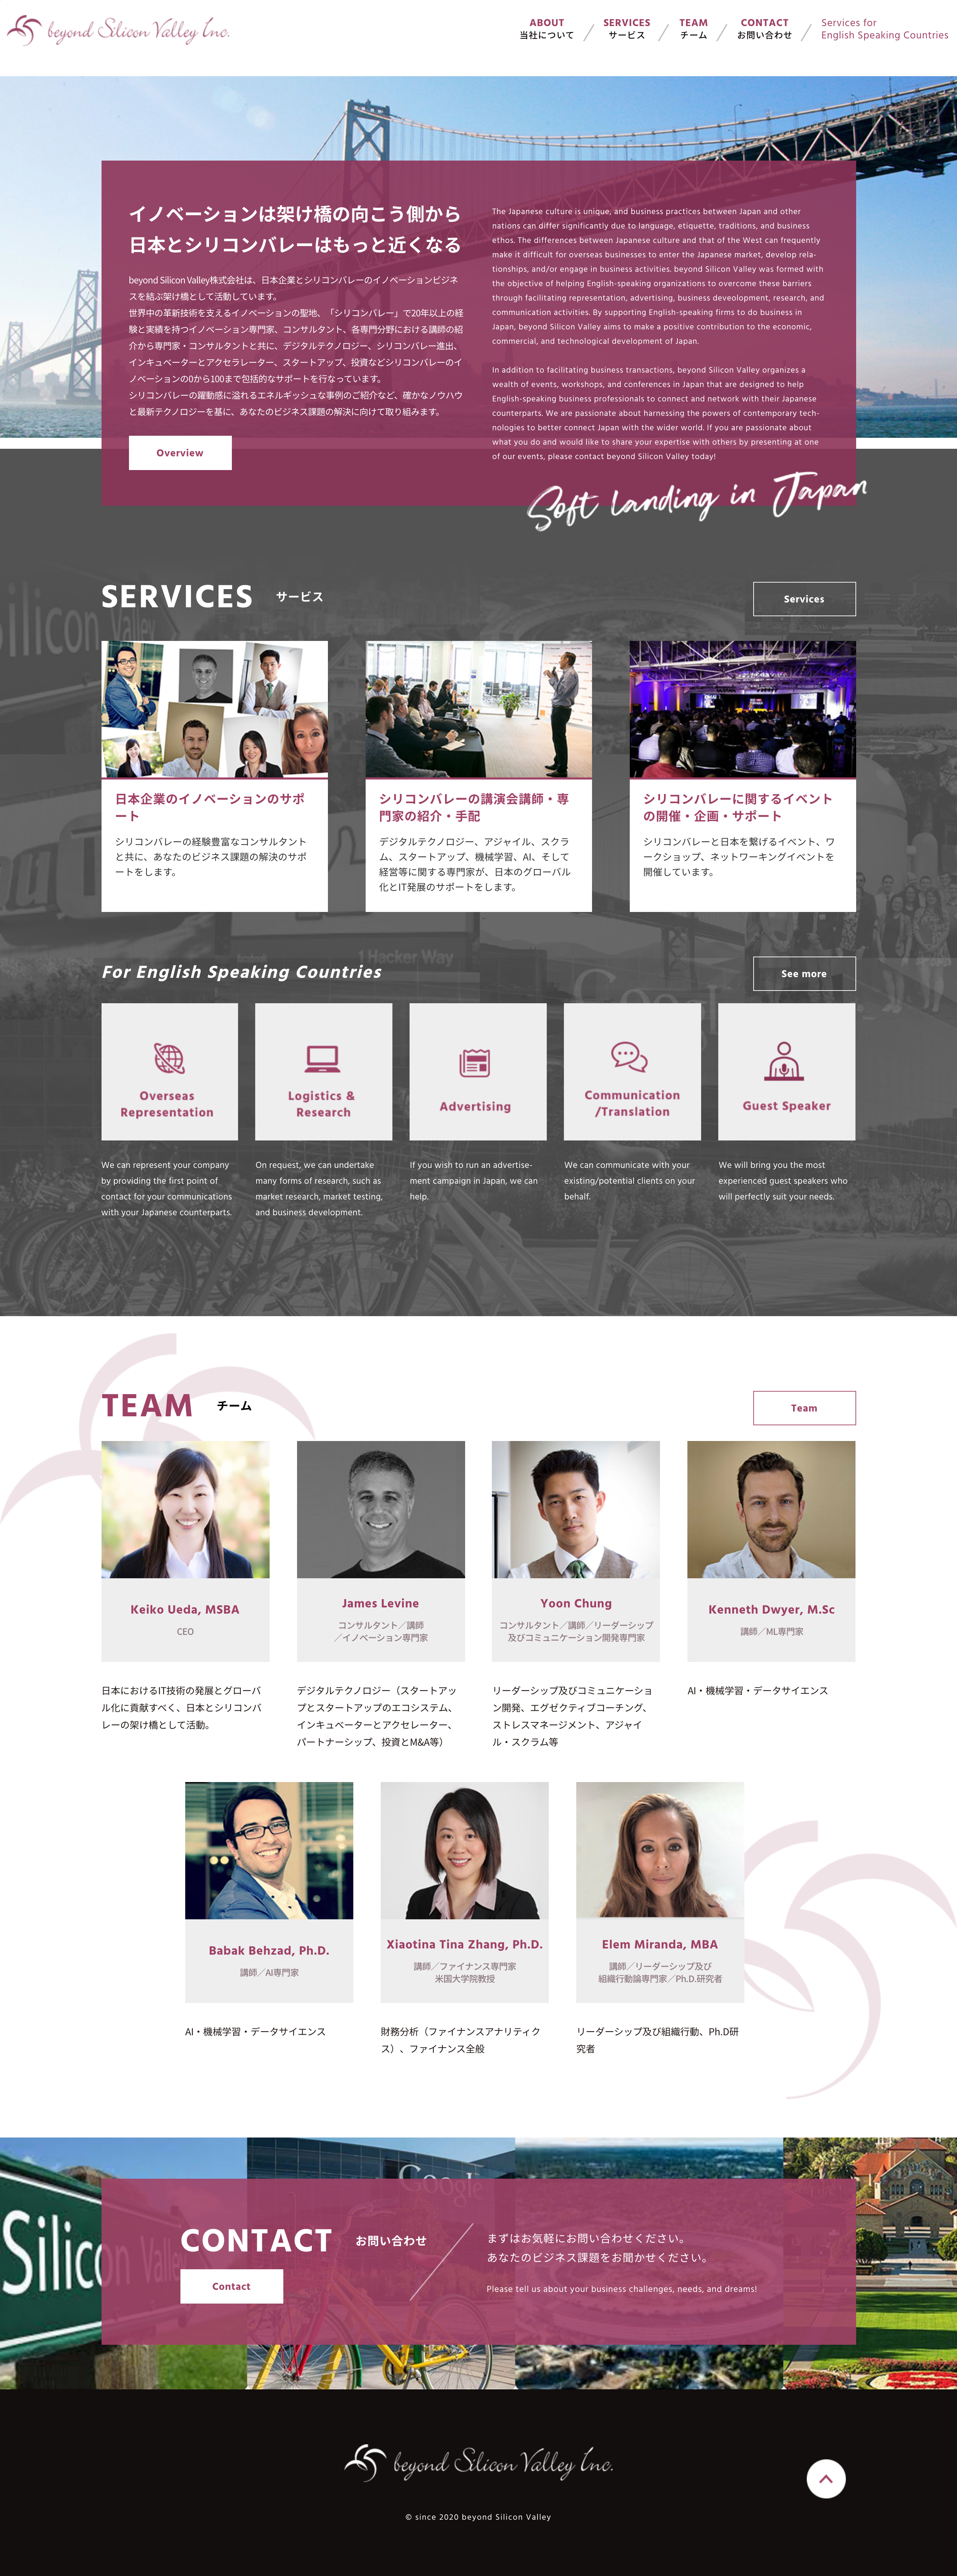 beyond Silicon Valley 株式会社